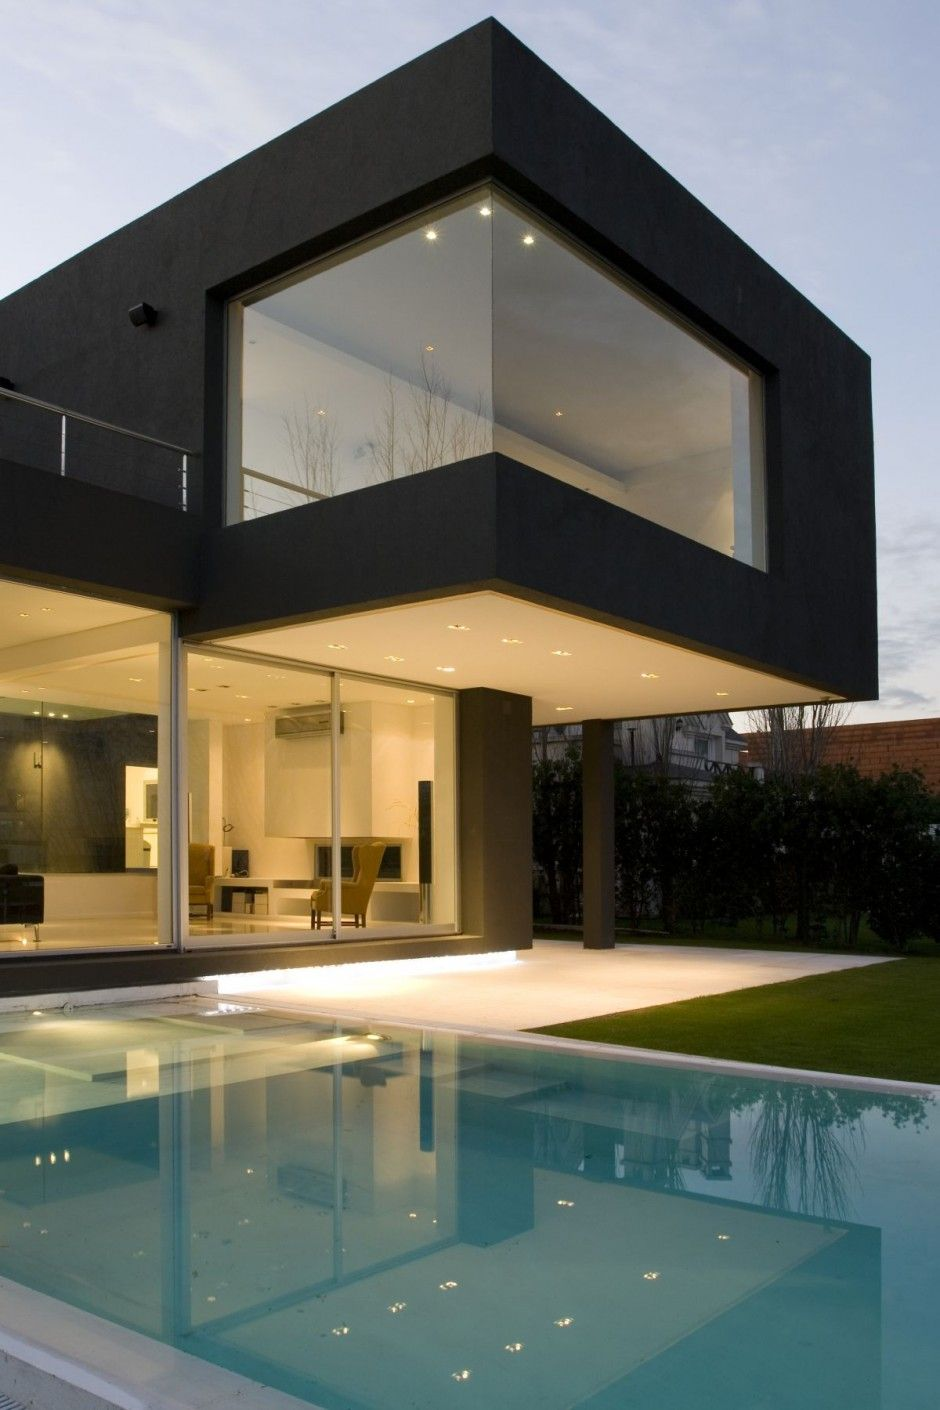 The black house by andr s remy architects architecture for Architettura moderna case